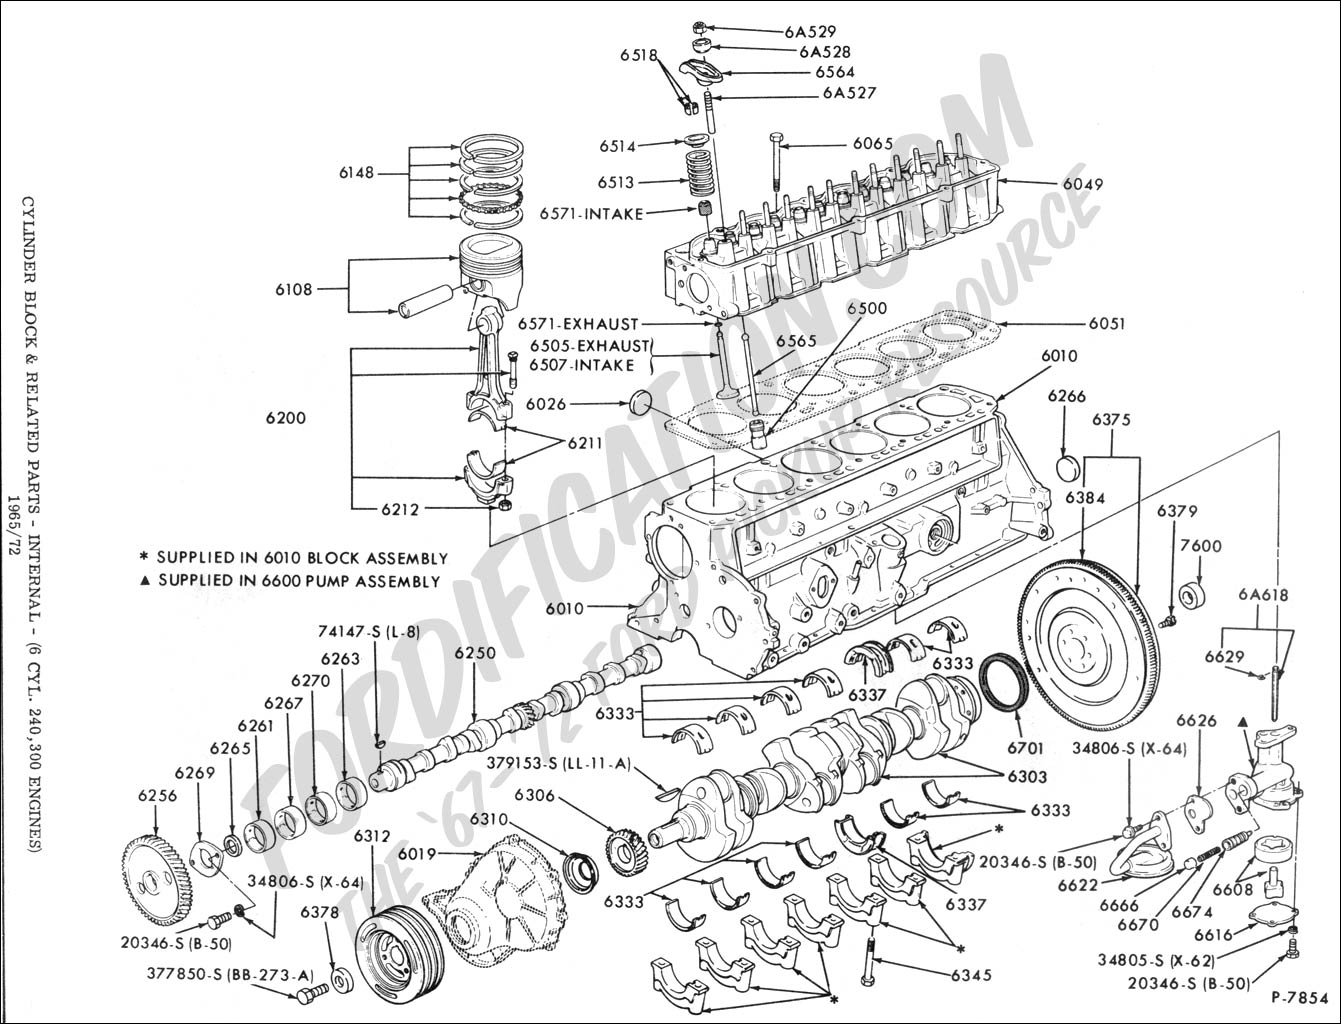 Ford 6 Cylinder Engine Diagram Guide And Troubleshooting Of Wiring Dt466 Internal Combustion 289 302 Elsalvadorla International Fuel